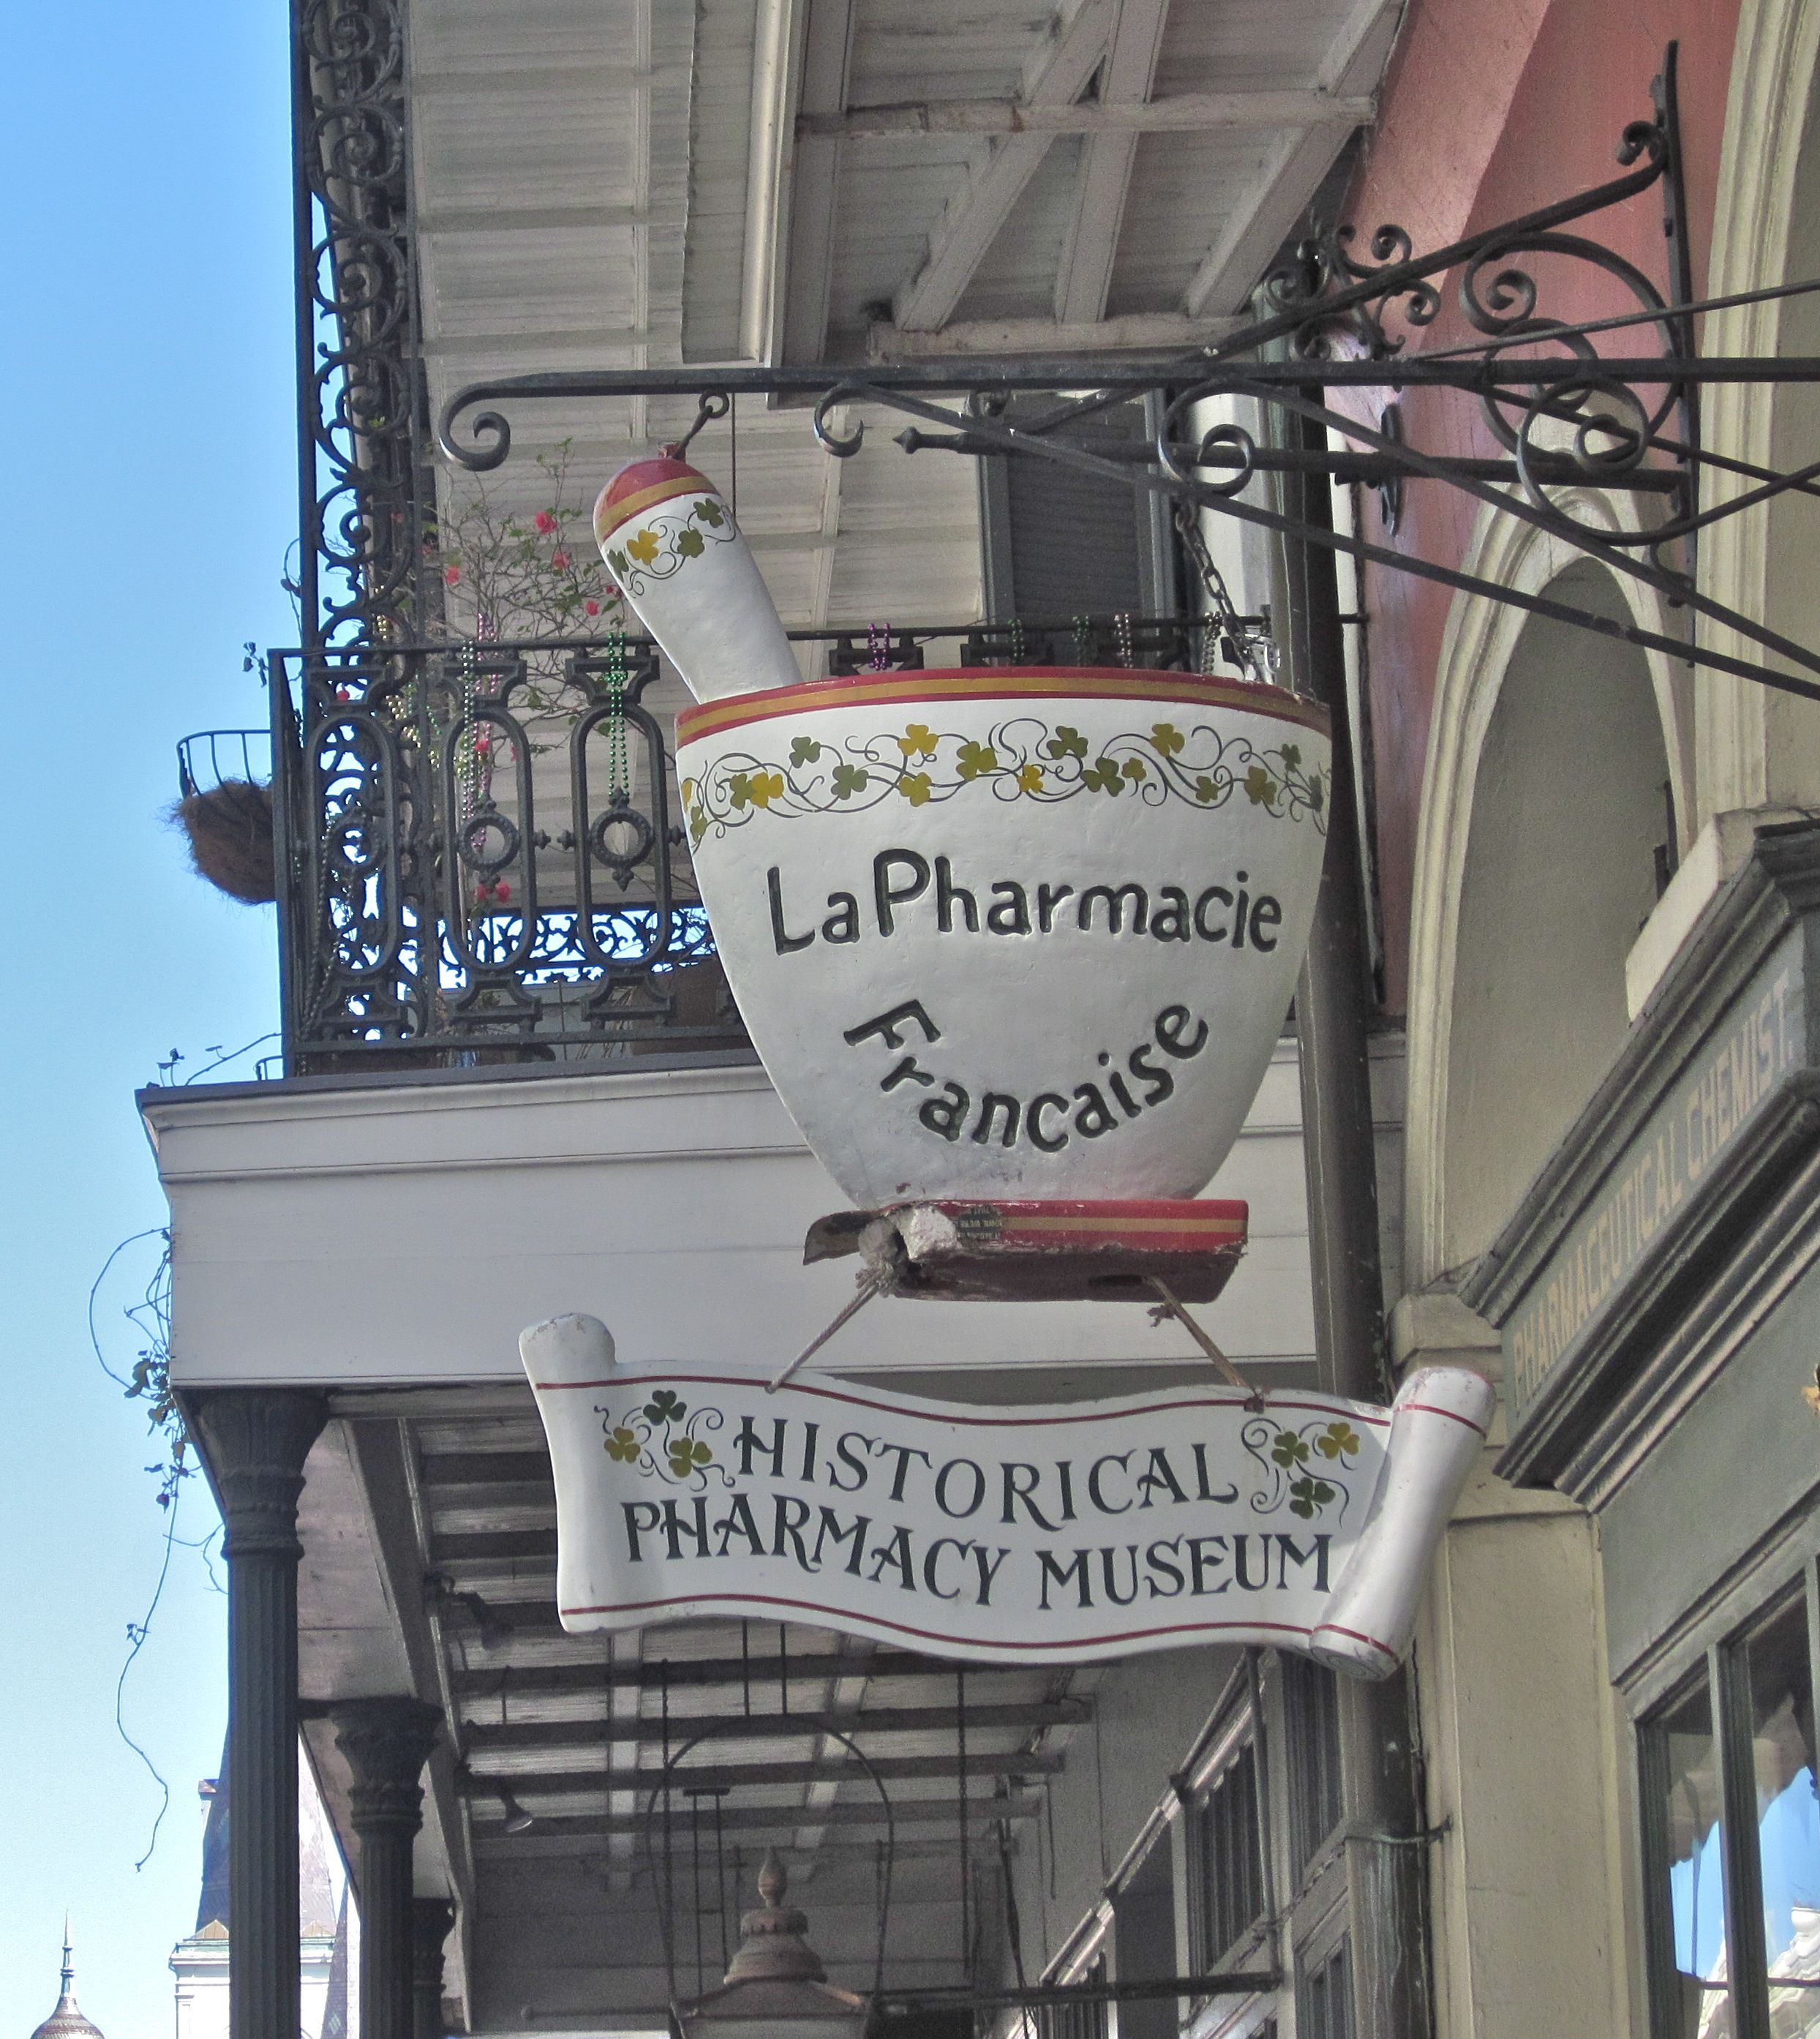 La Pharmacie © 2013 Susan Ashley Michael